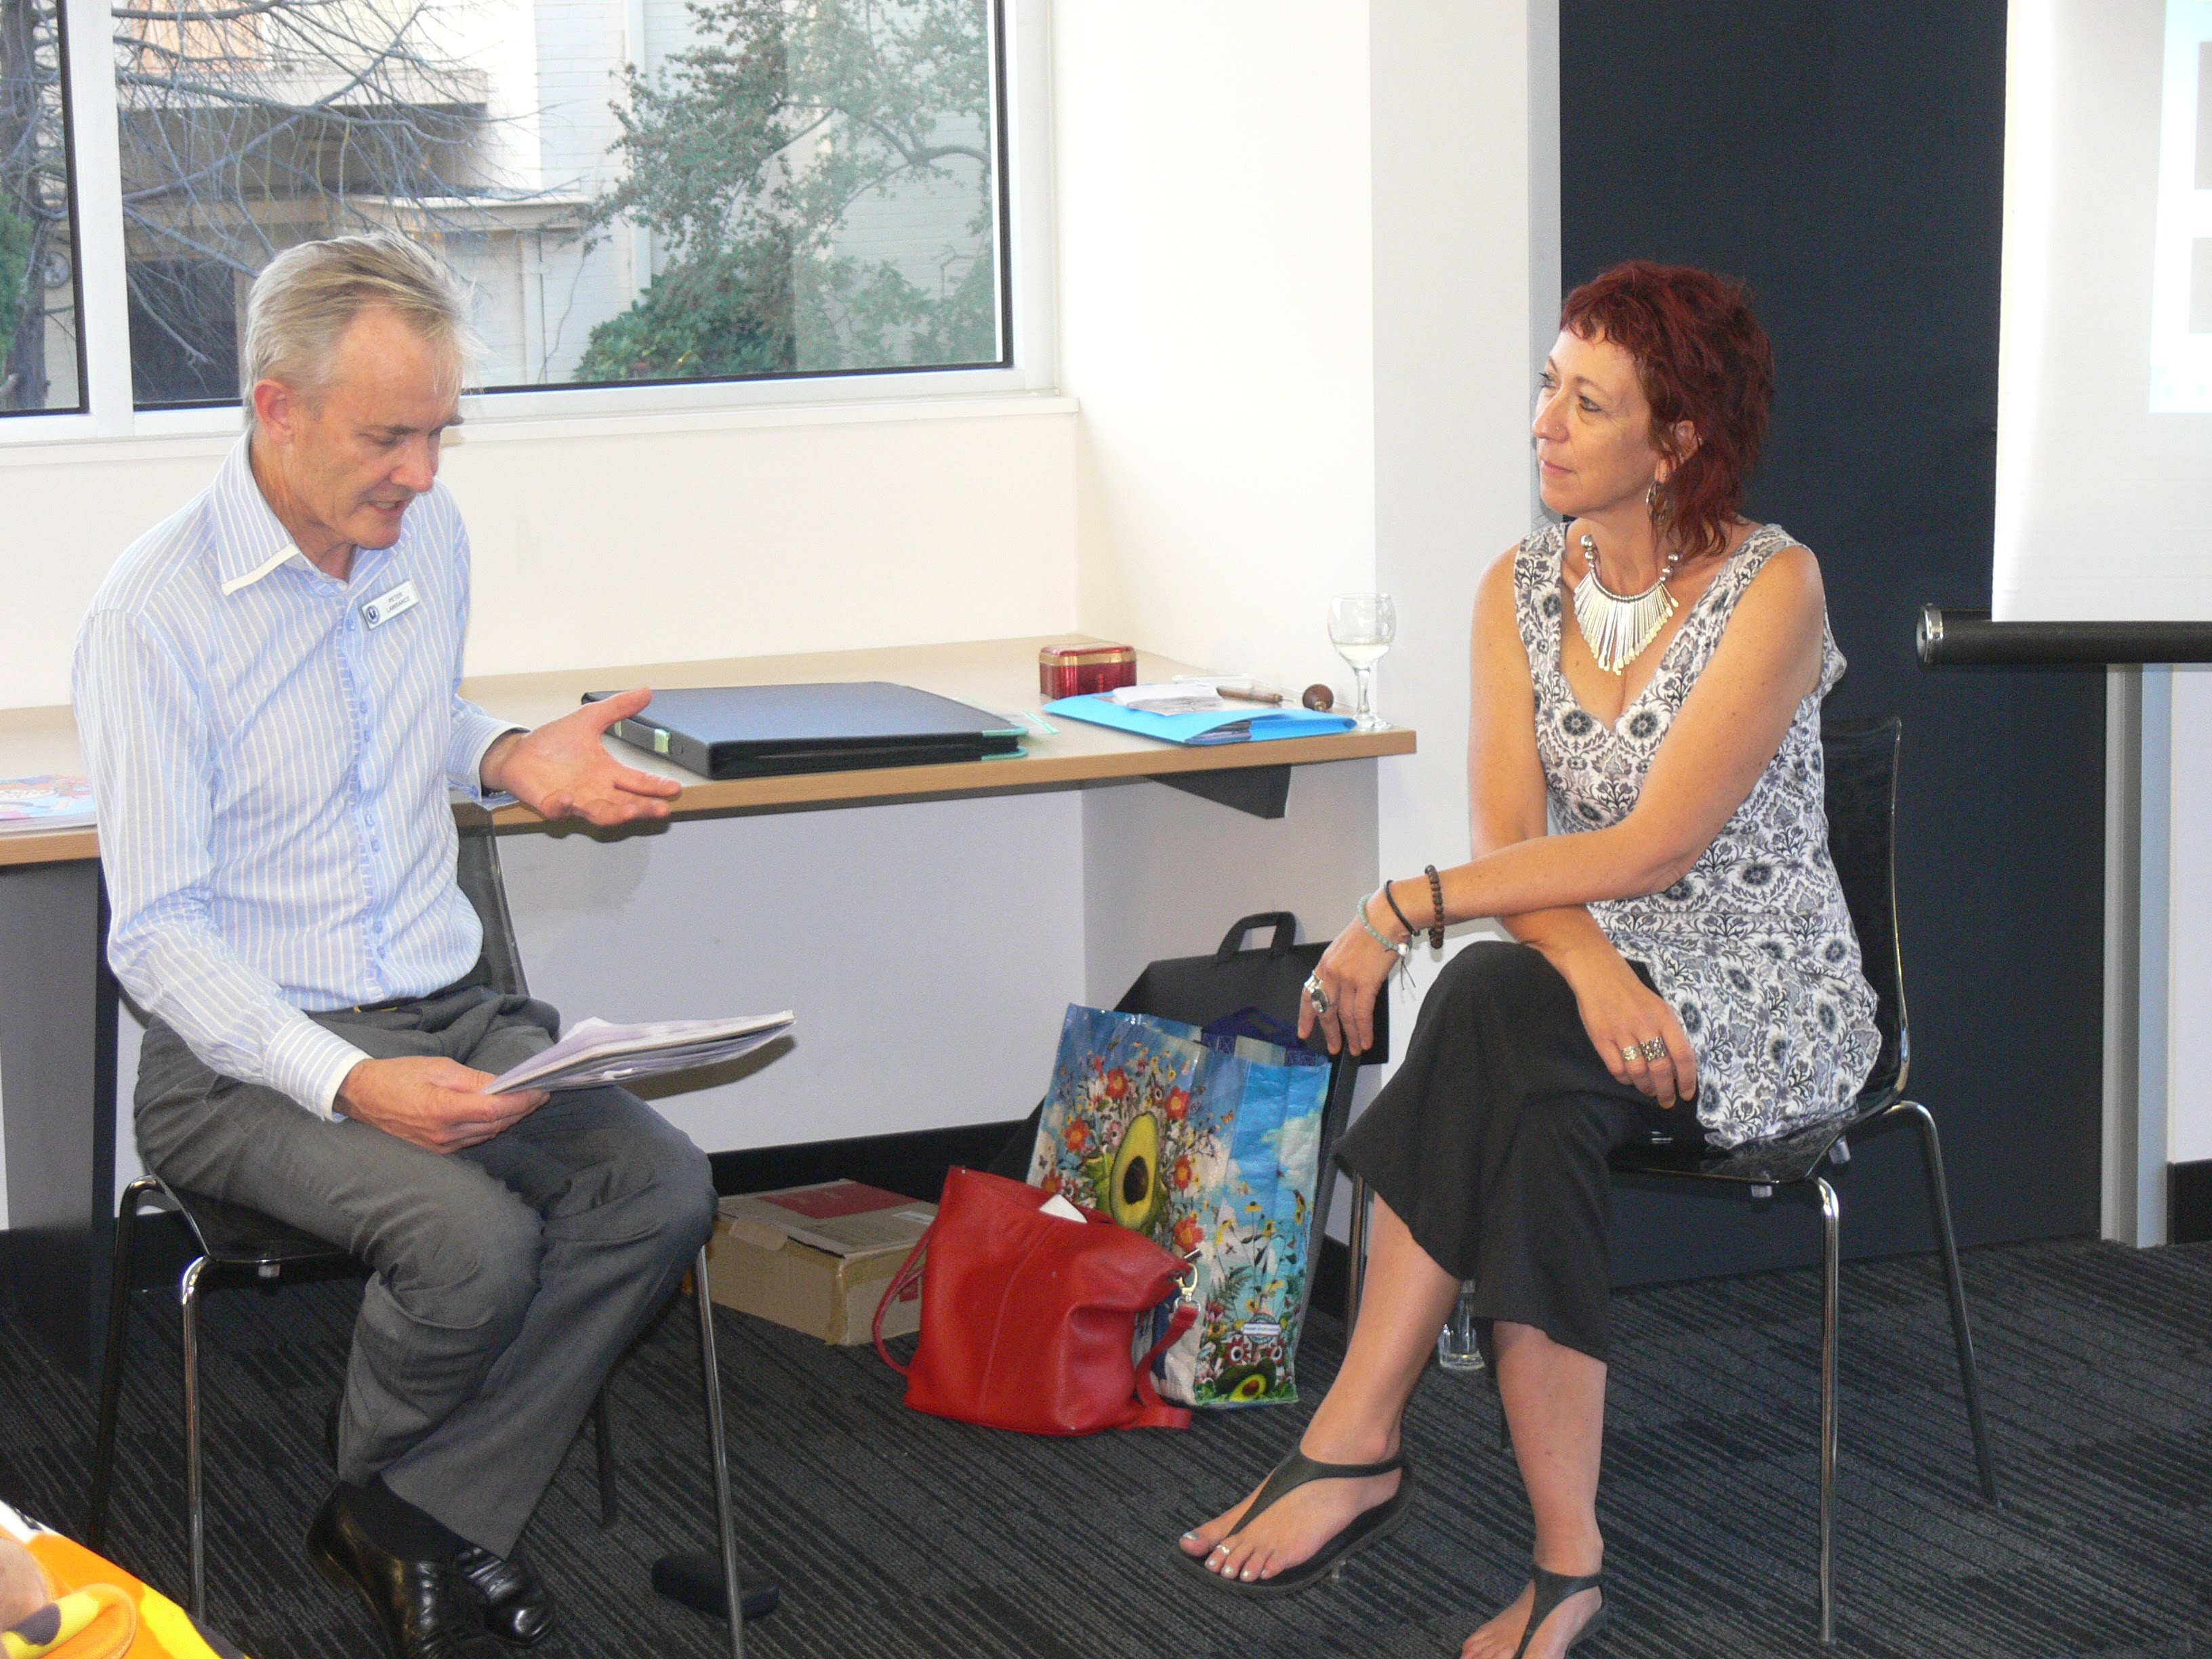 In conversation at CGG